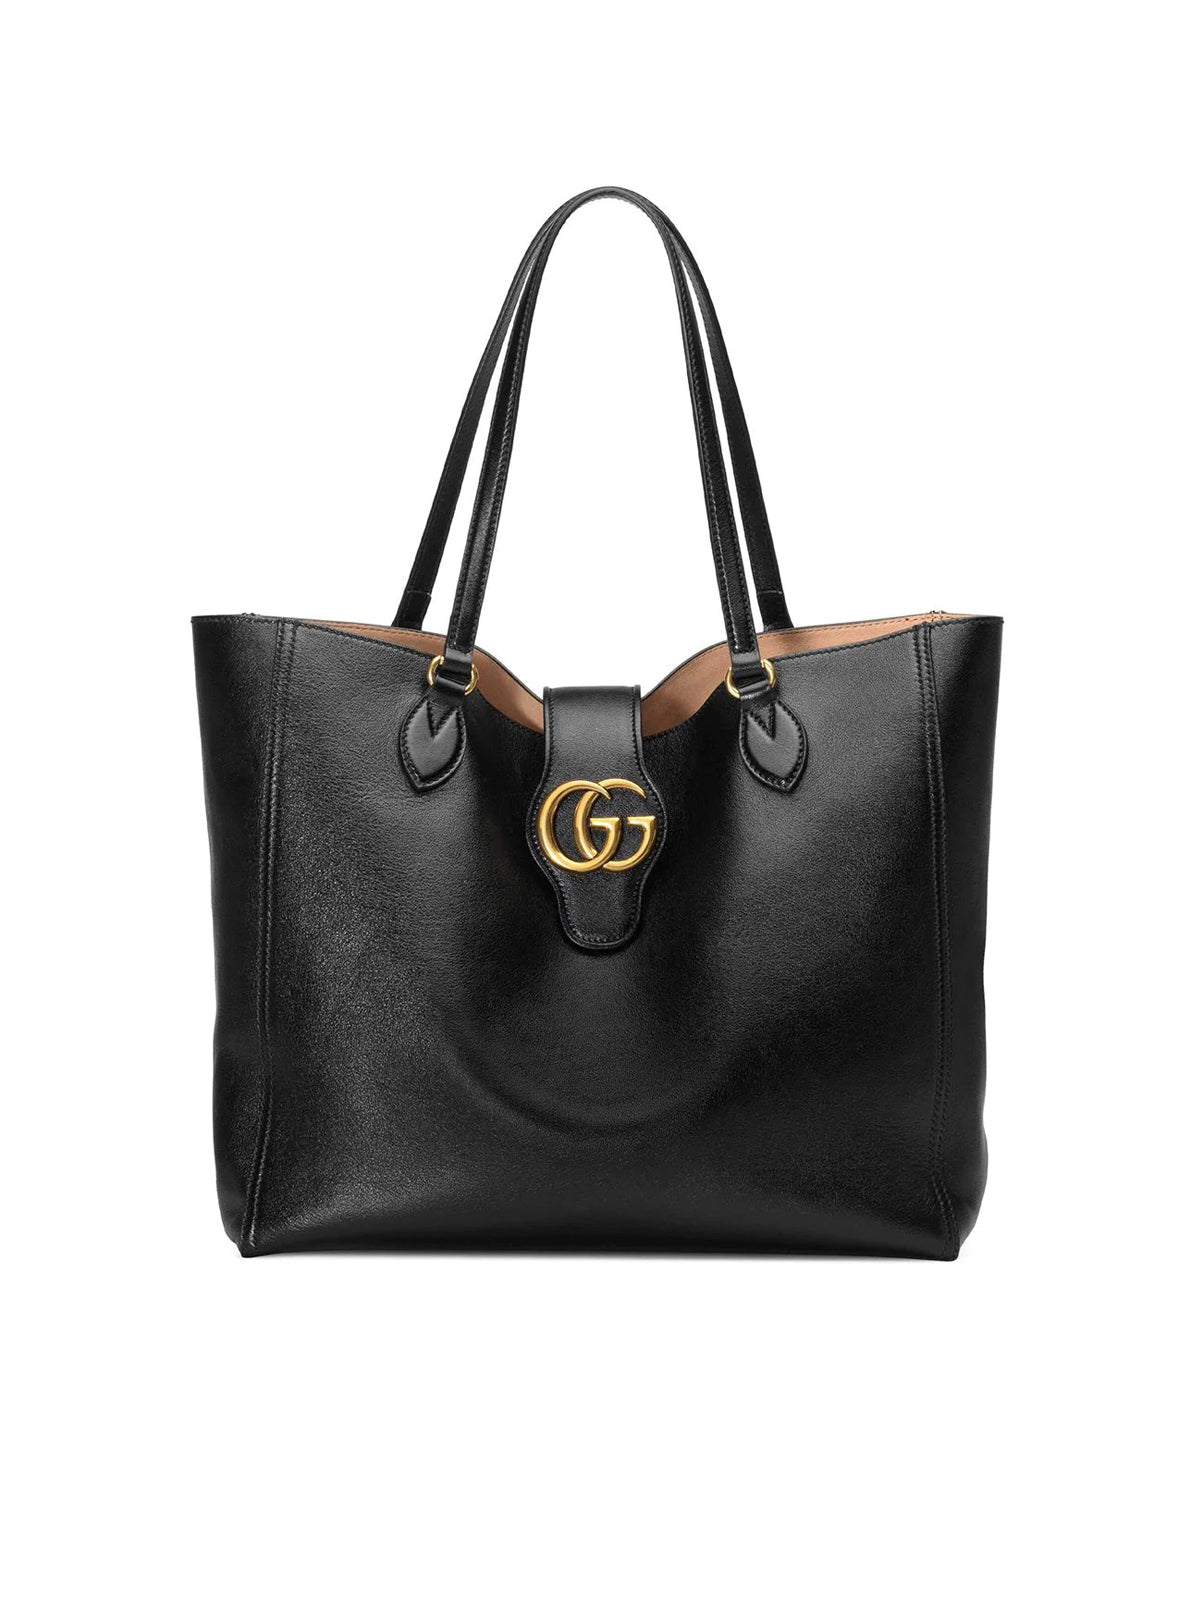 medium Double G tote bag